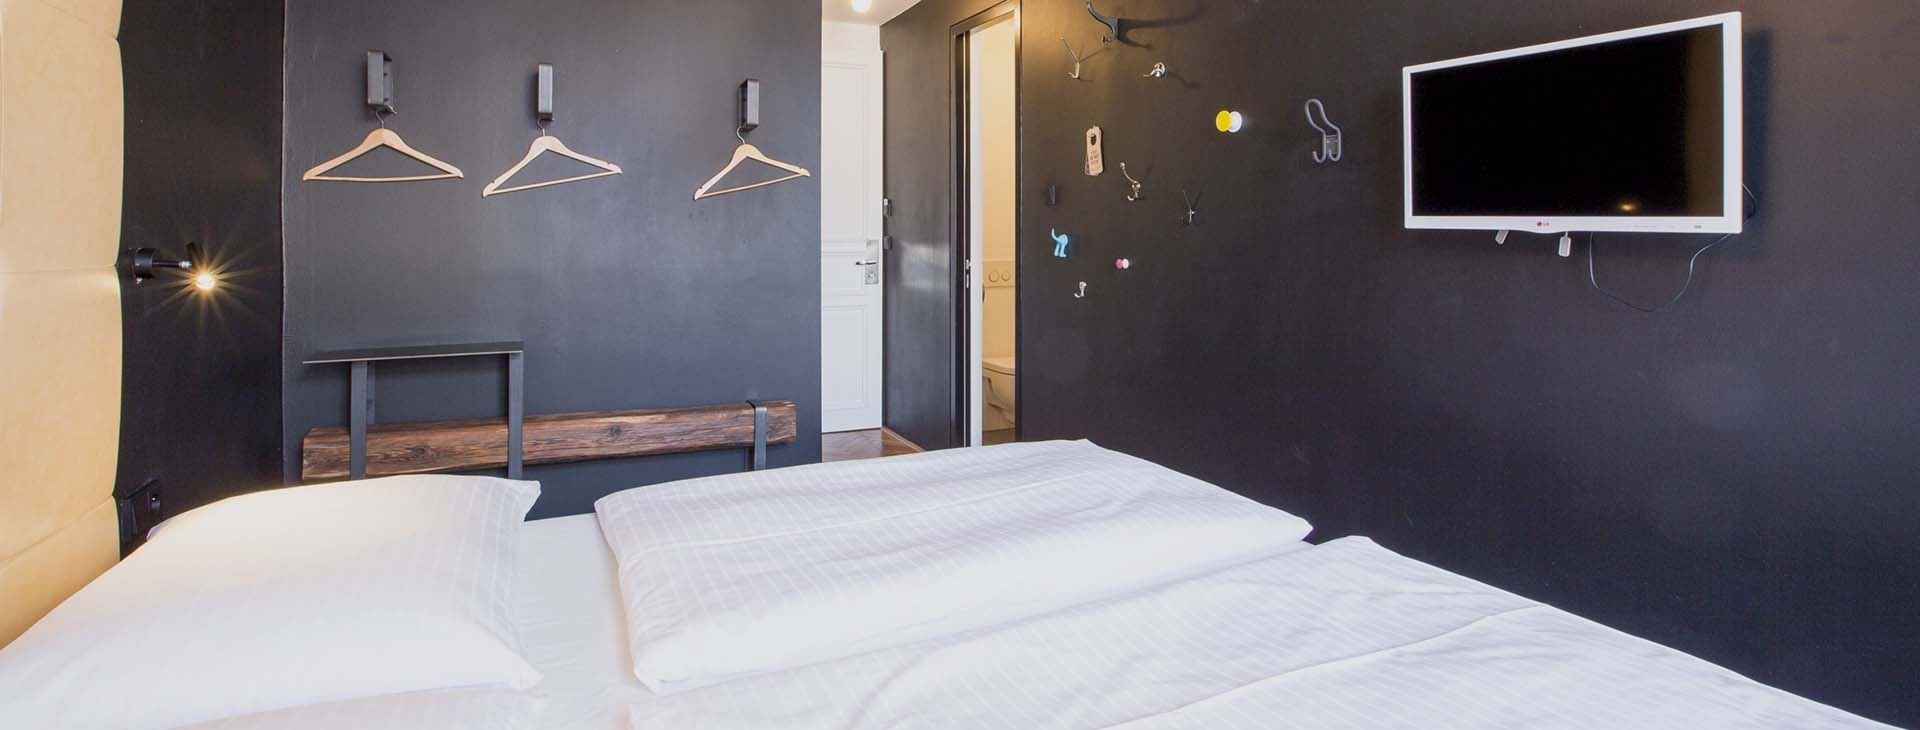 sophies-hostel-private-room-2-1920×730